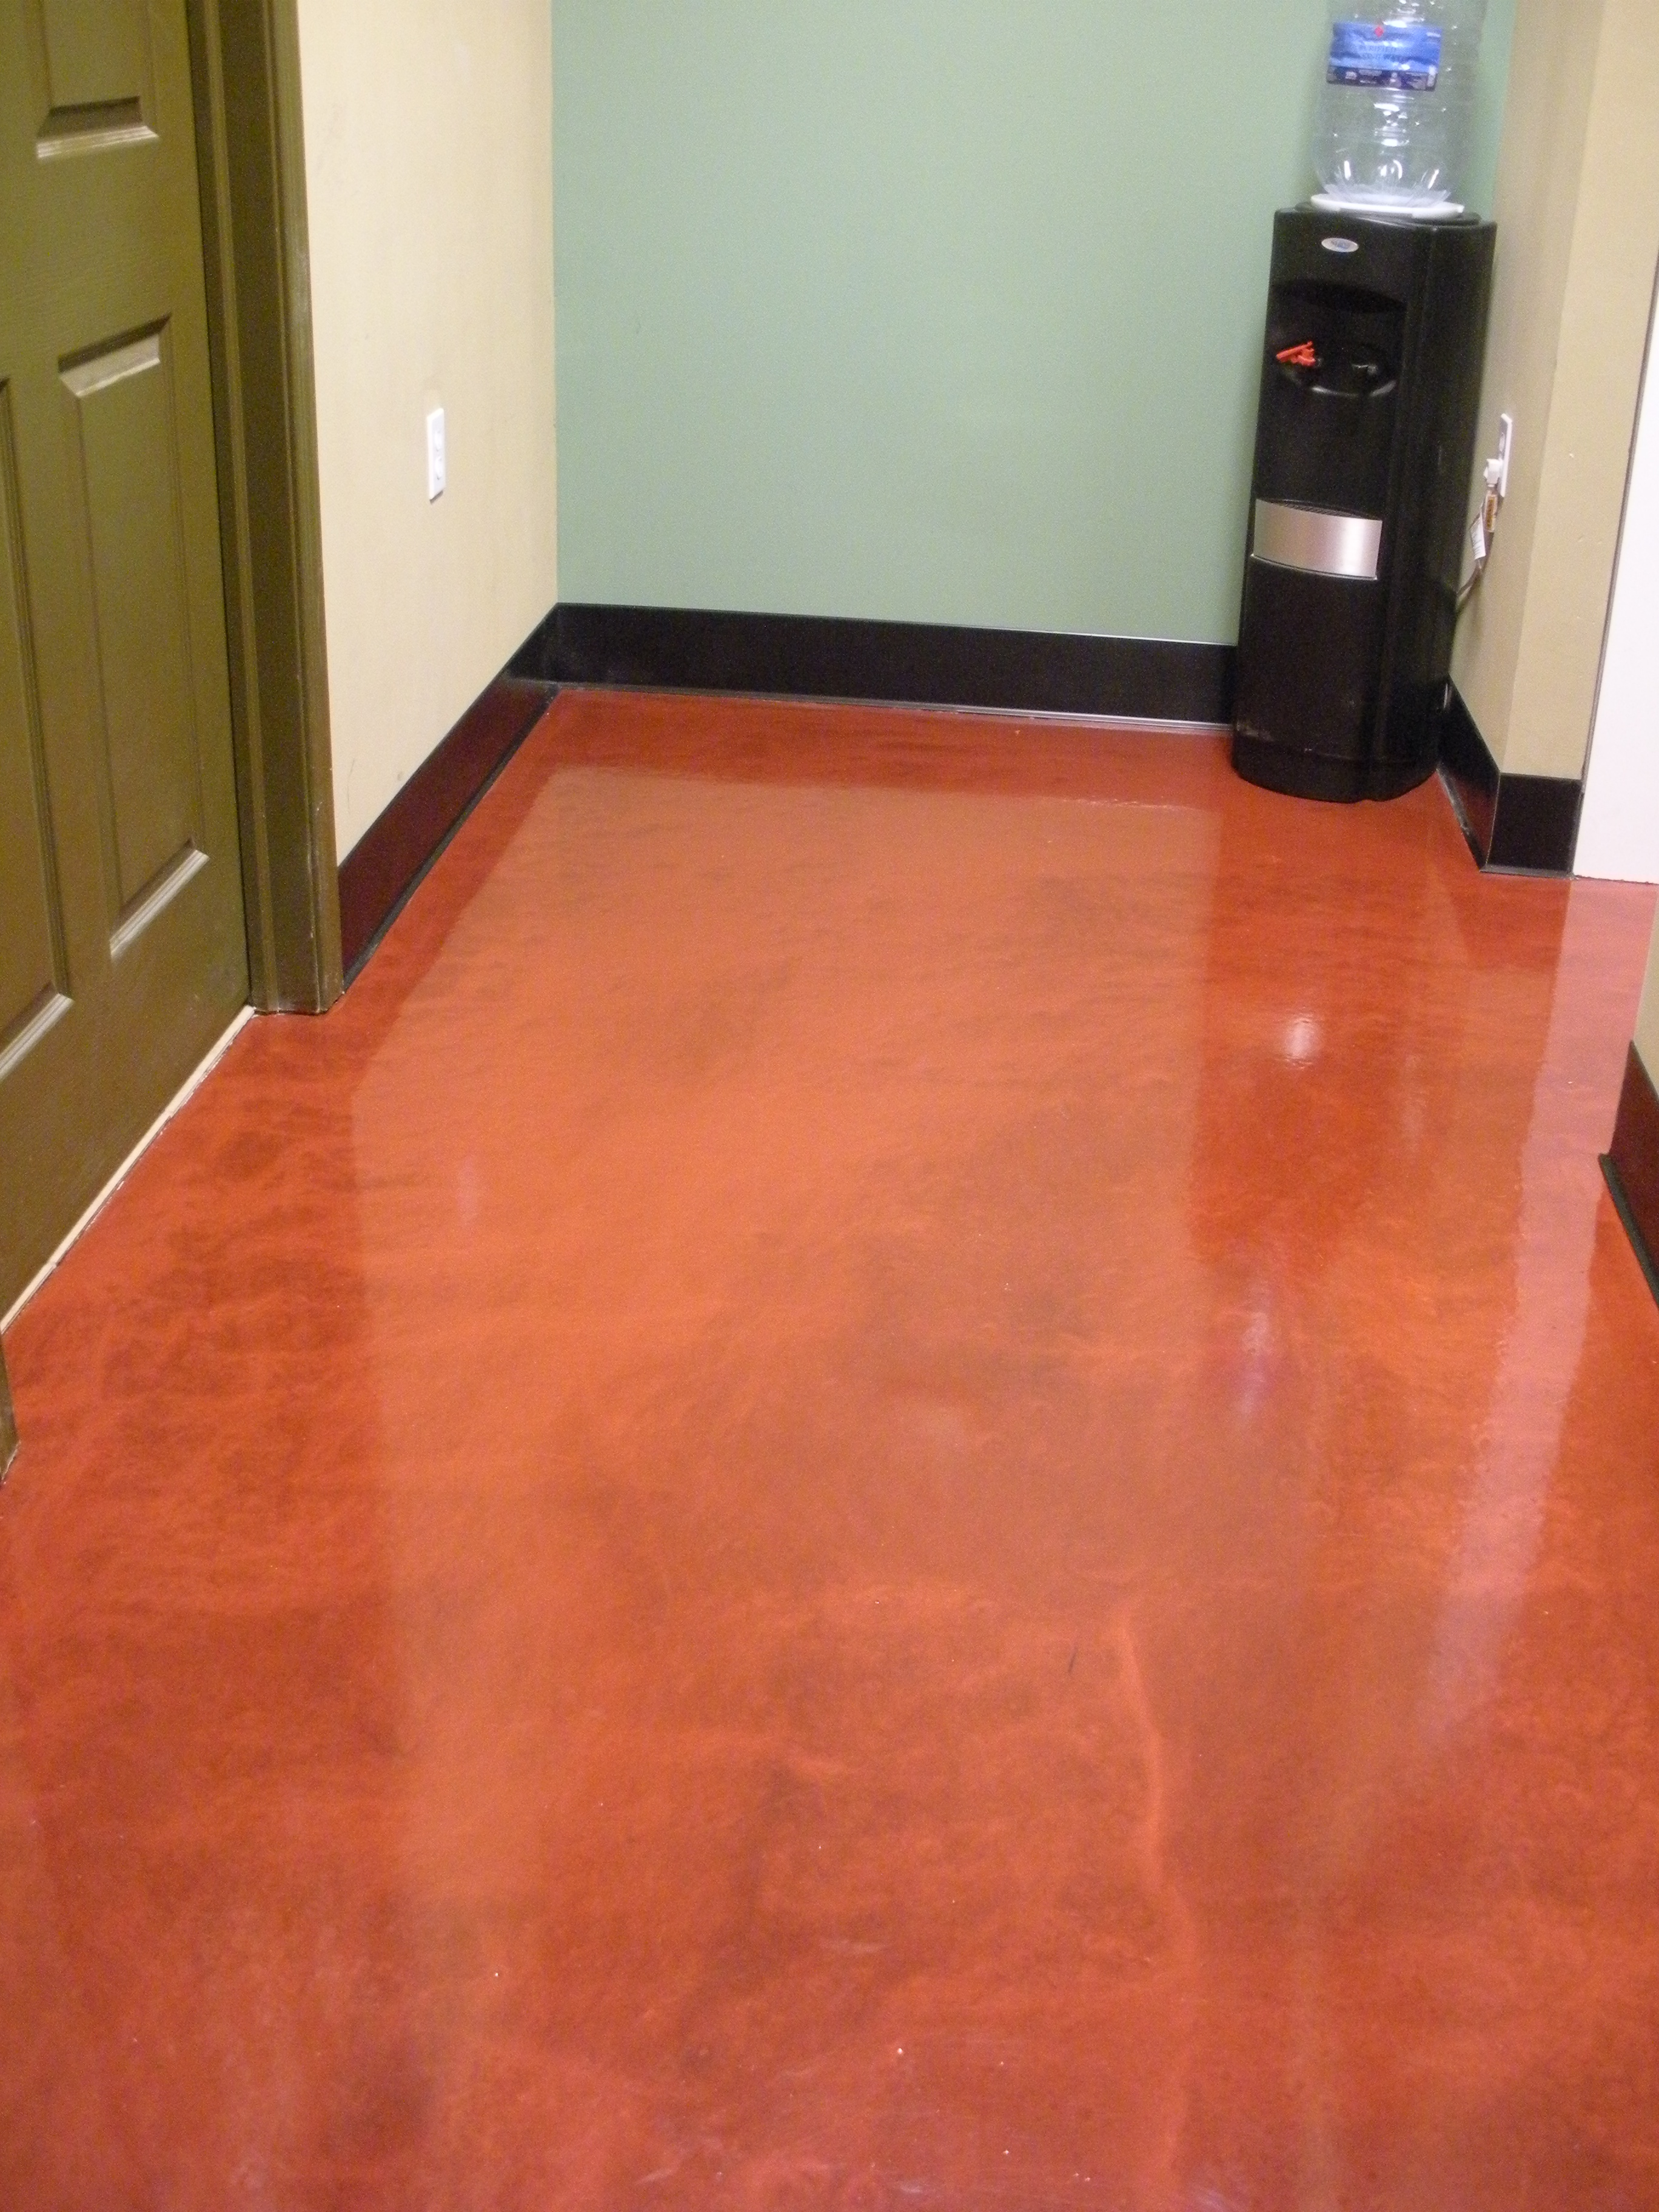 Home Depot Garage Floor Epoxy Home Design Ideas and